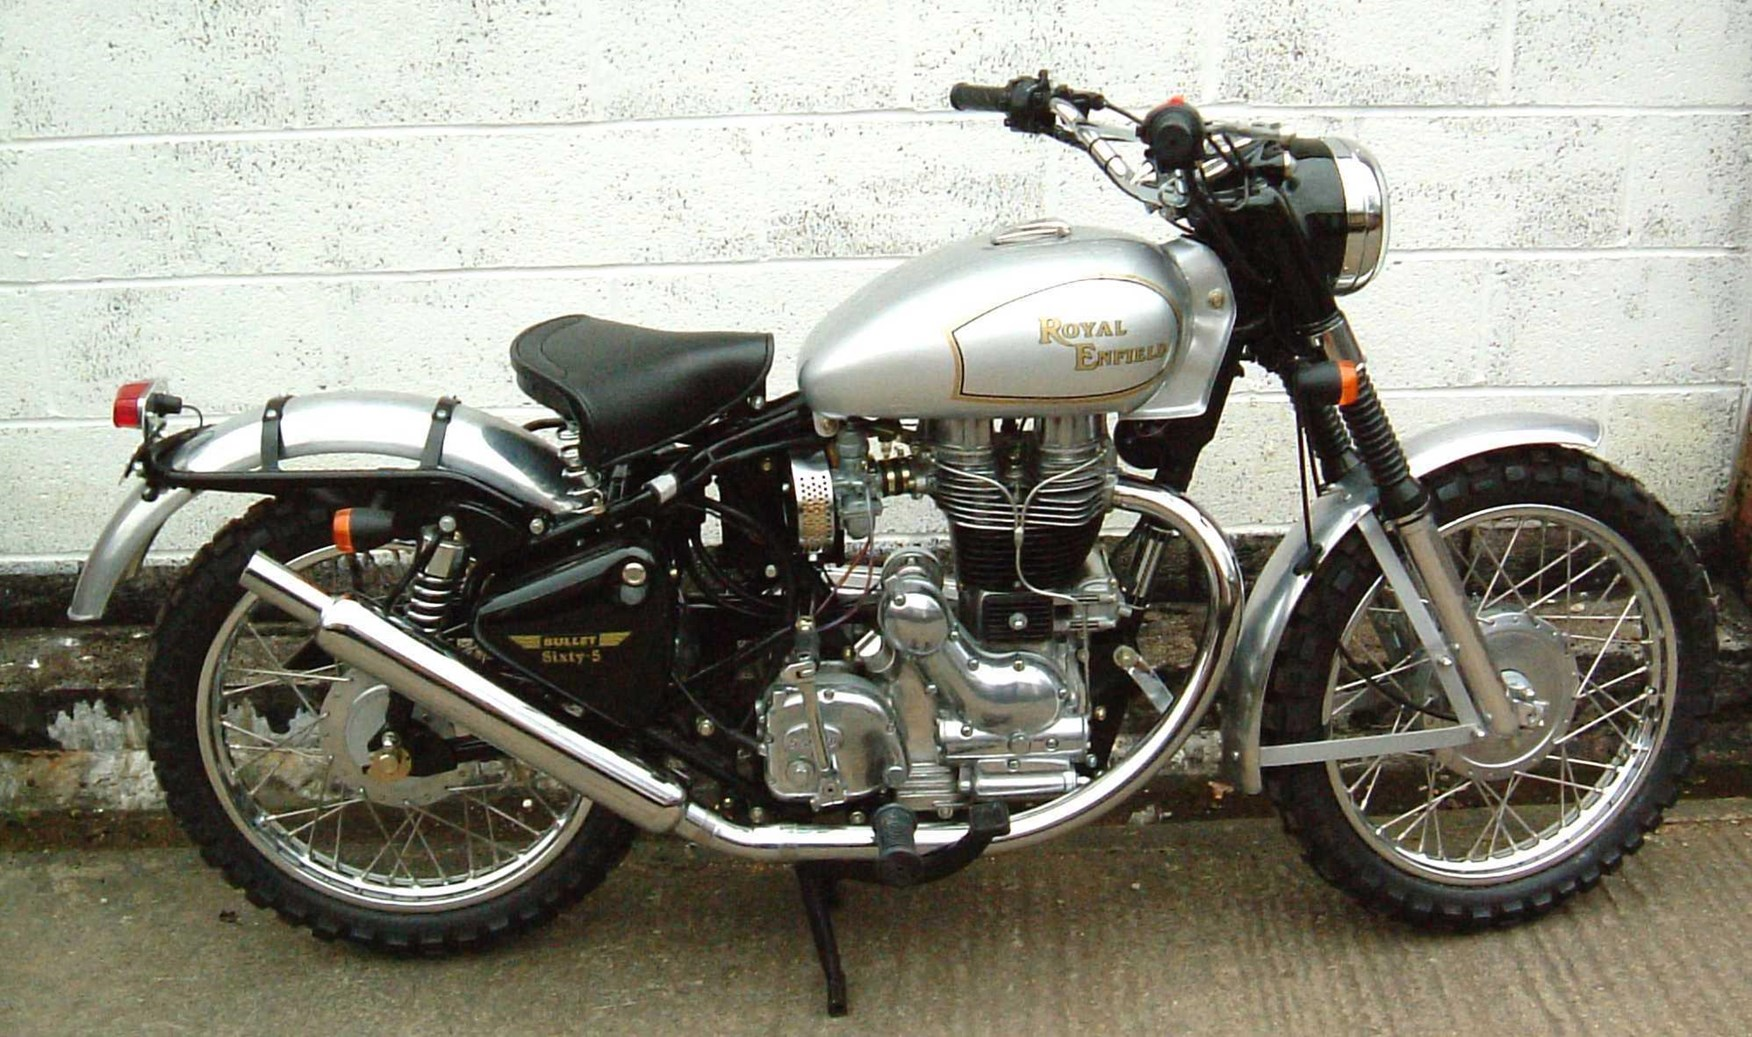 Royal Enfield Bullet 500 Trial Trail 2001 images #122968